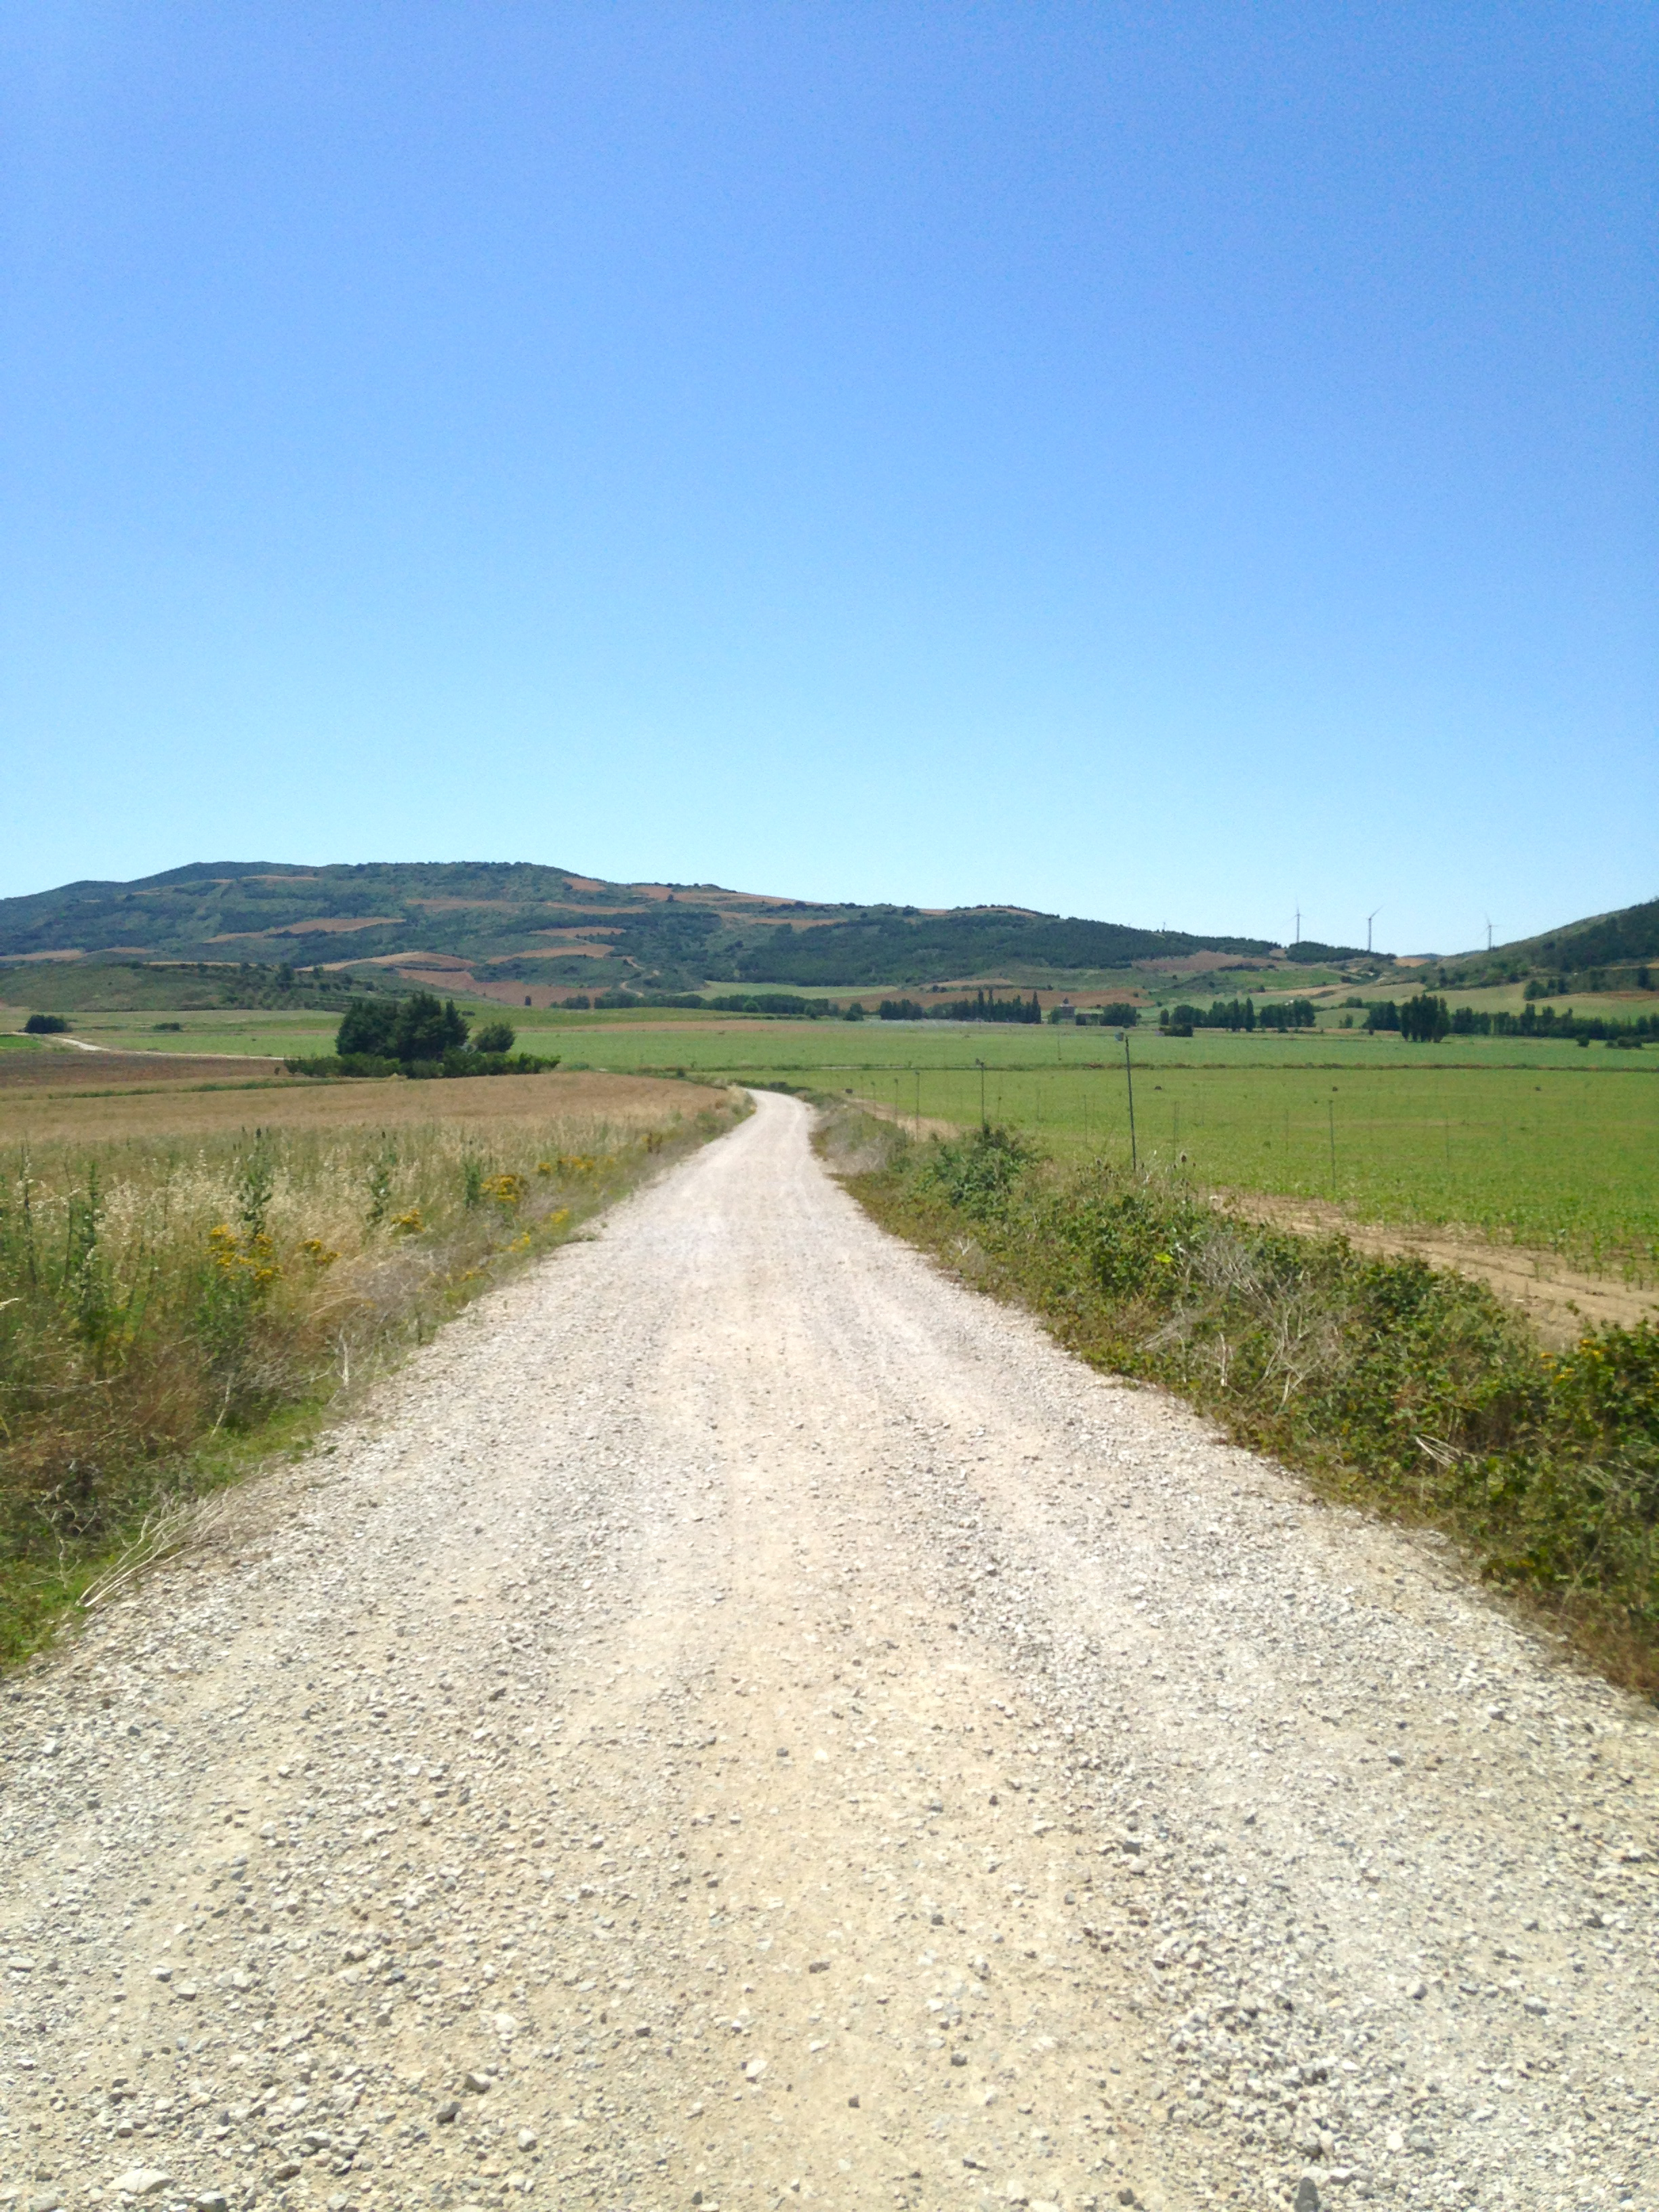 The road to Eunate, Camino de Santiago